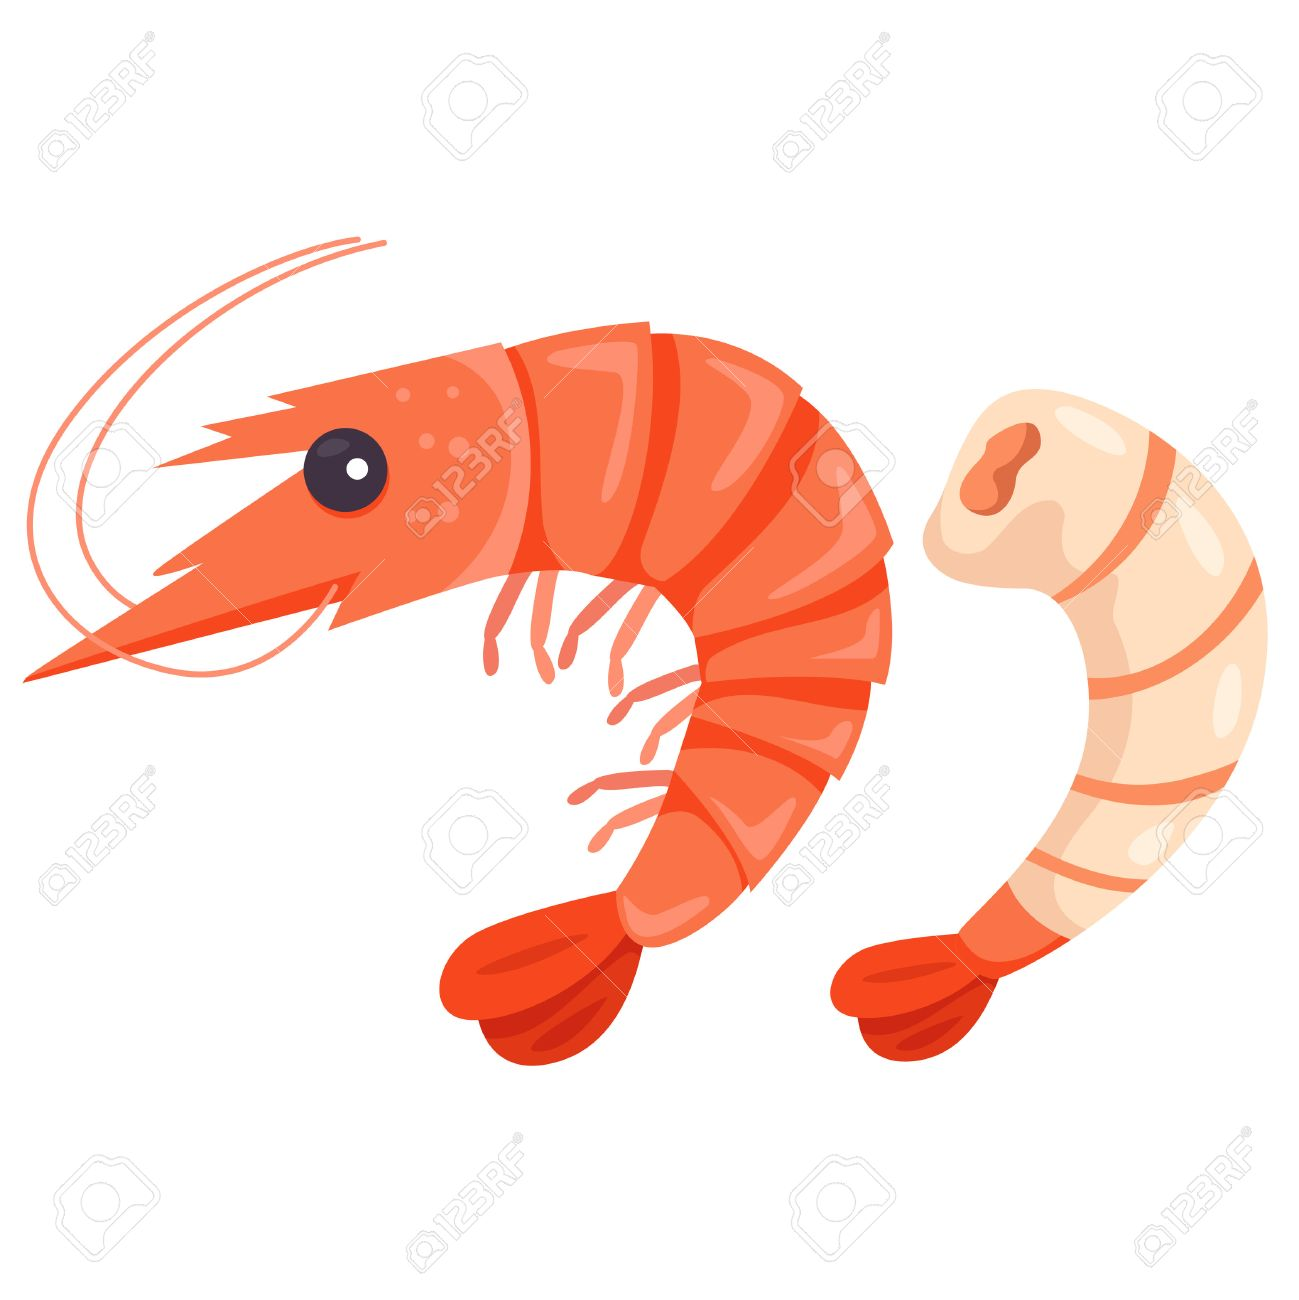 23 104 shrimp stock illustrations cliparts and royalty free shrimp rh 123rf com Shrimp Boat Clip Art Fried Shrimp Clip Art